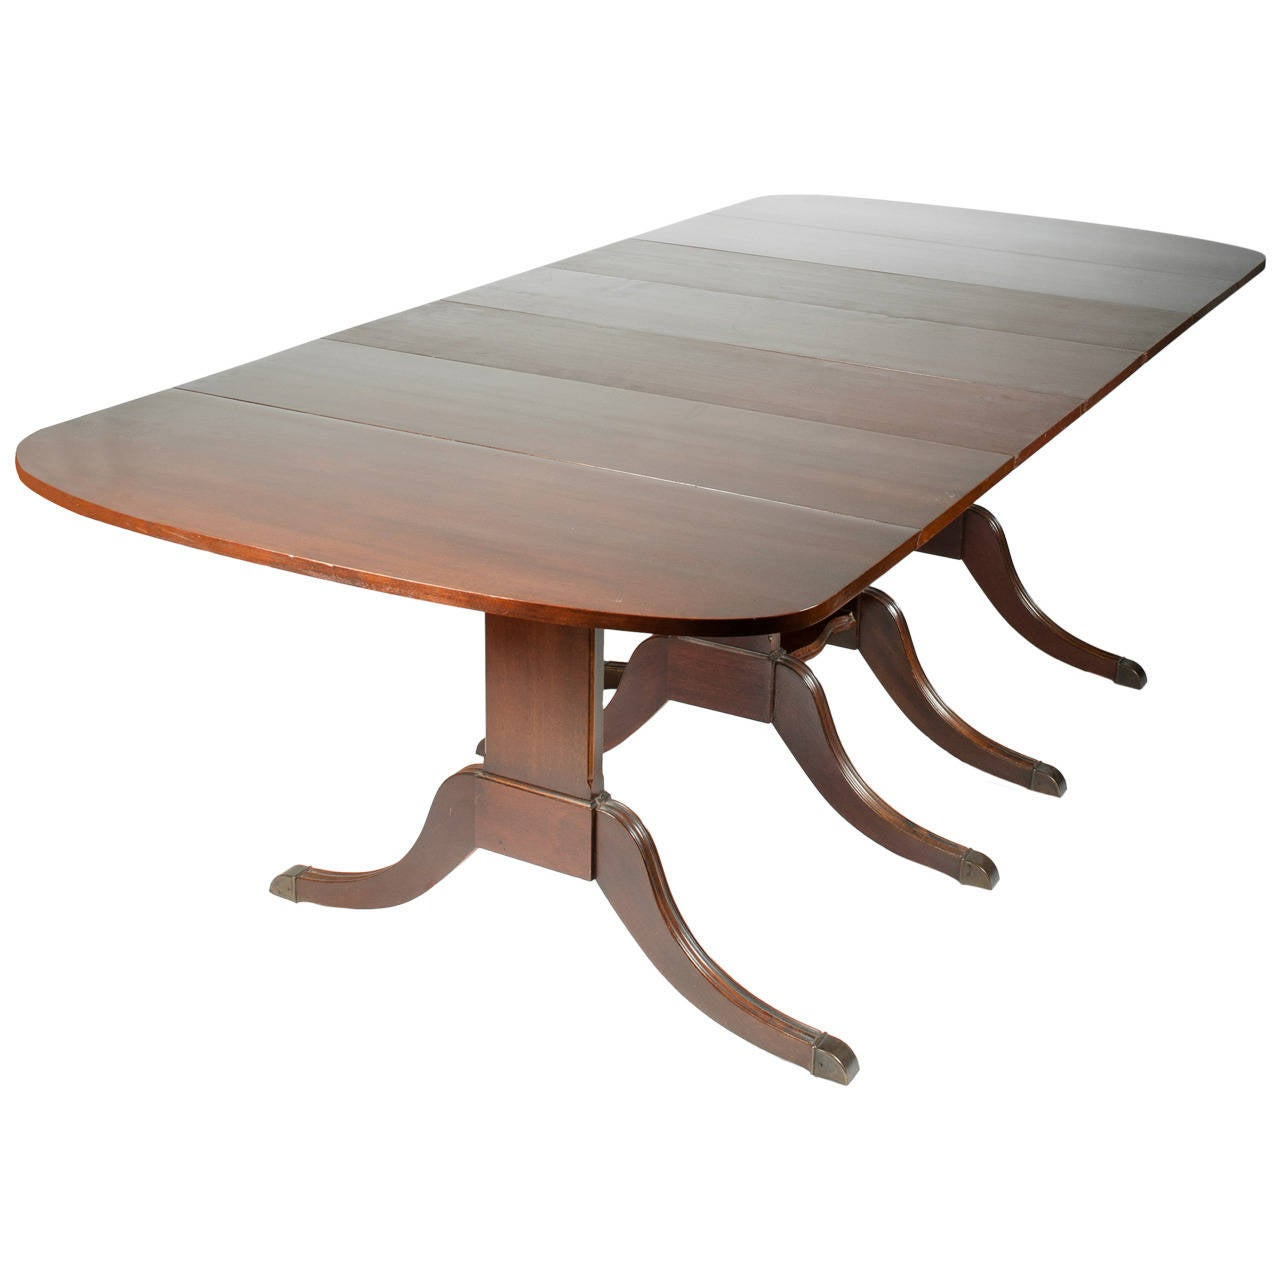 Duncan phyfe style drop leaf extension table at 1stdibs for Dining room table styles